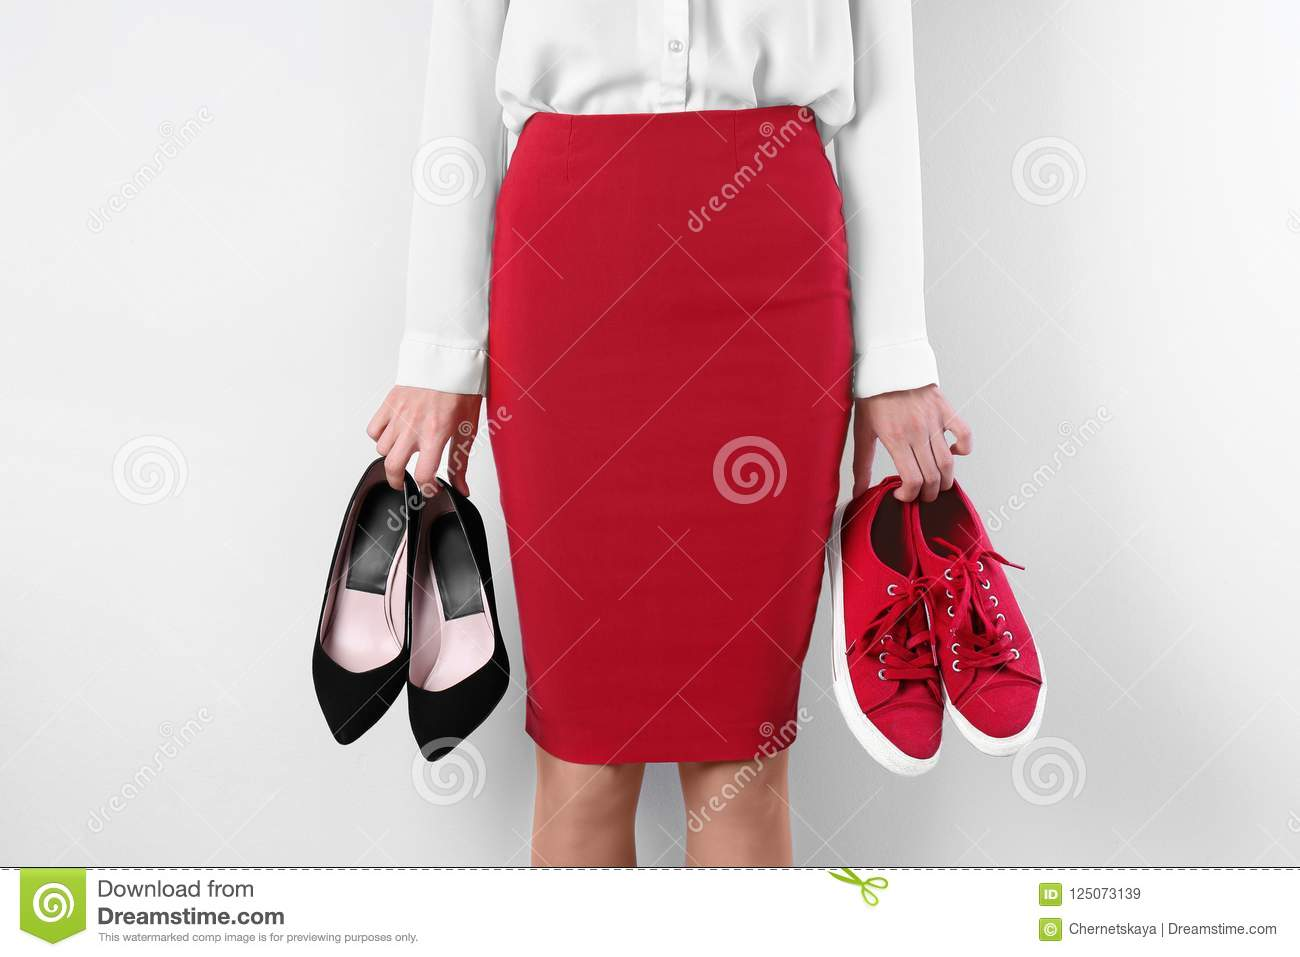 Woman holding high heeled shoes and sneakers on white background, closeup